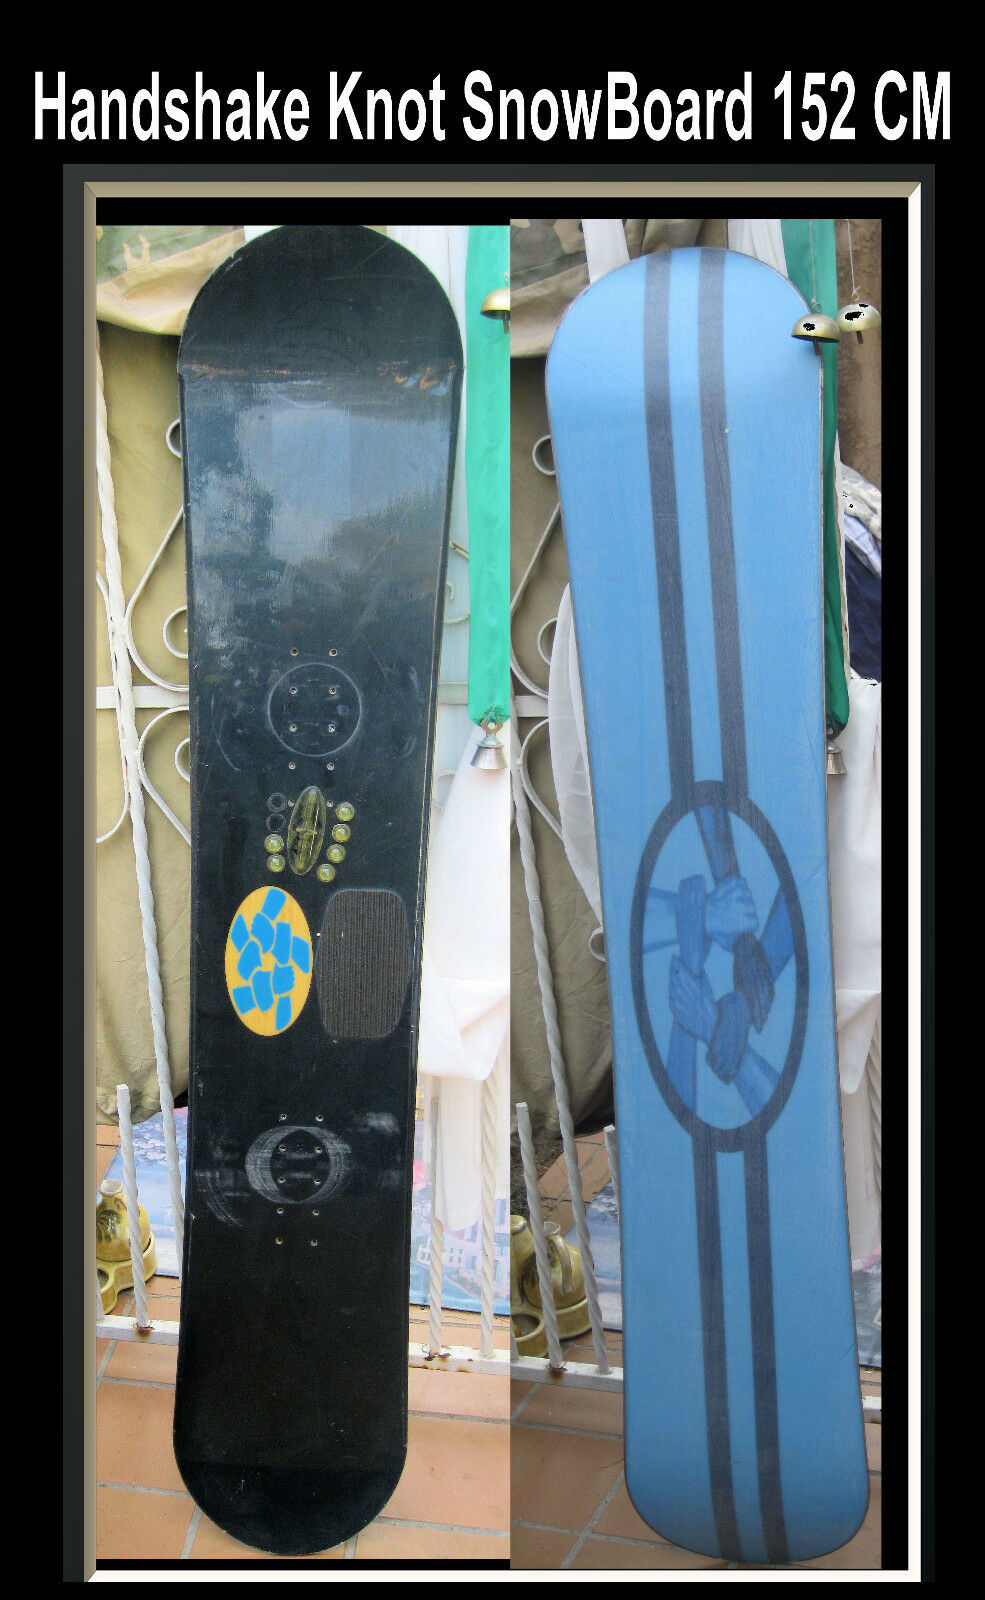 Snowboard  Handshake Knot   Snow Board 152 CM Gloss Quality RARE  great offers